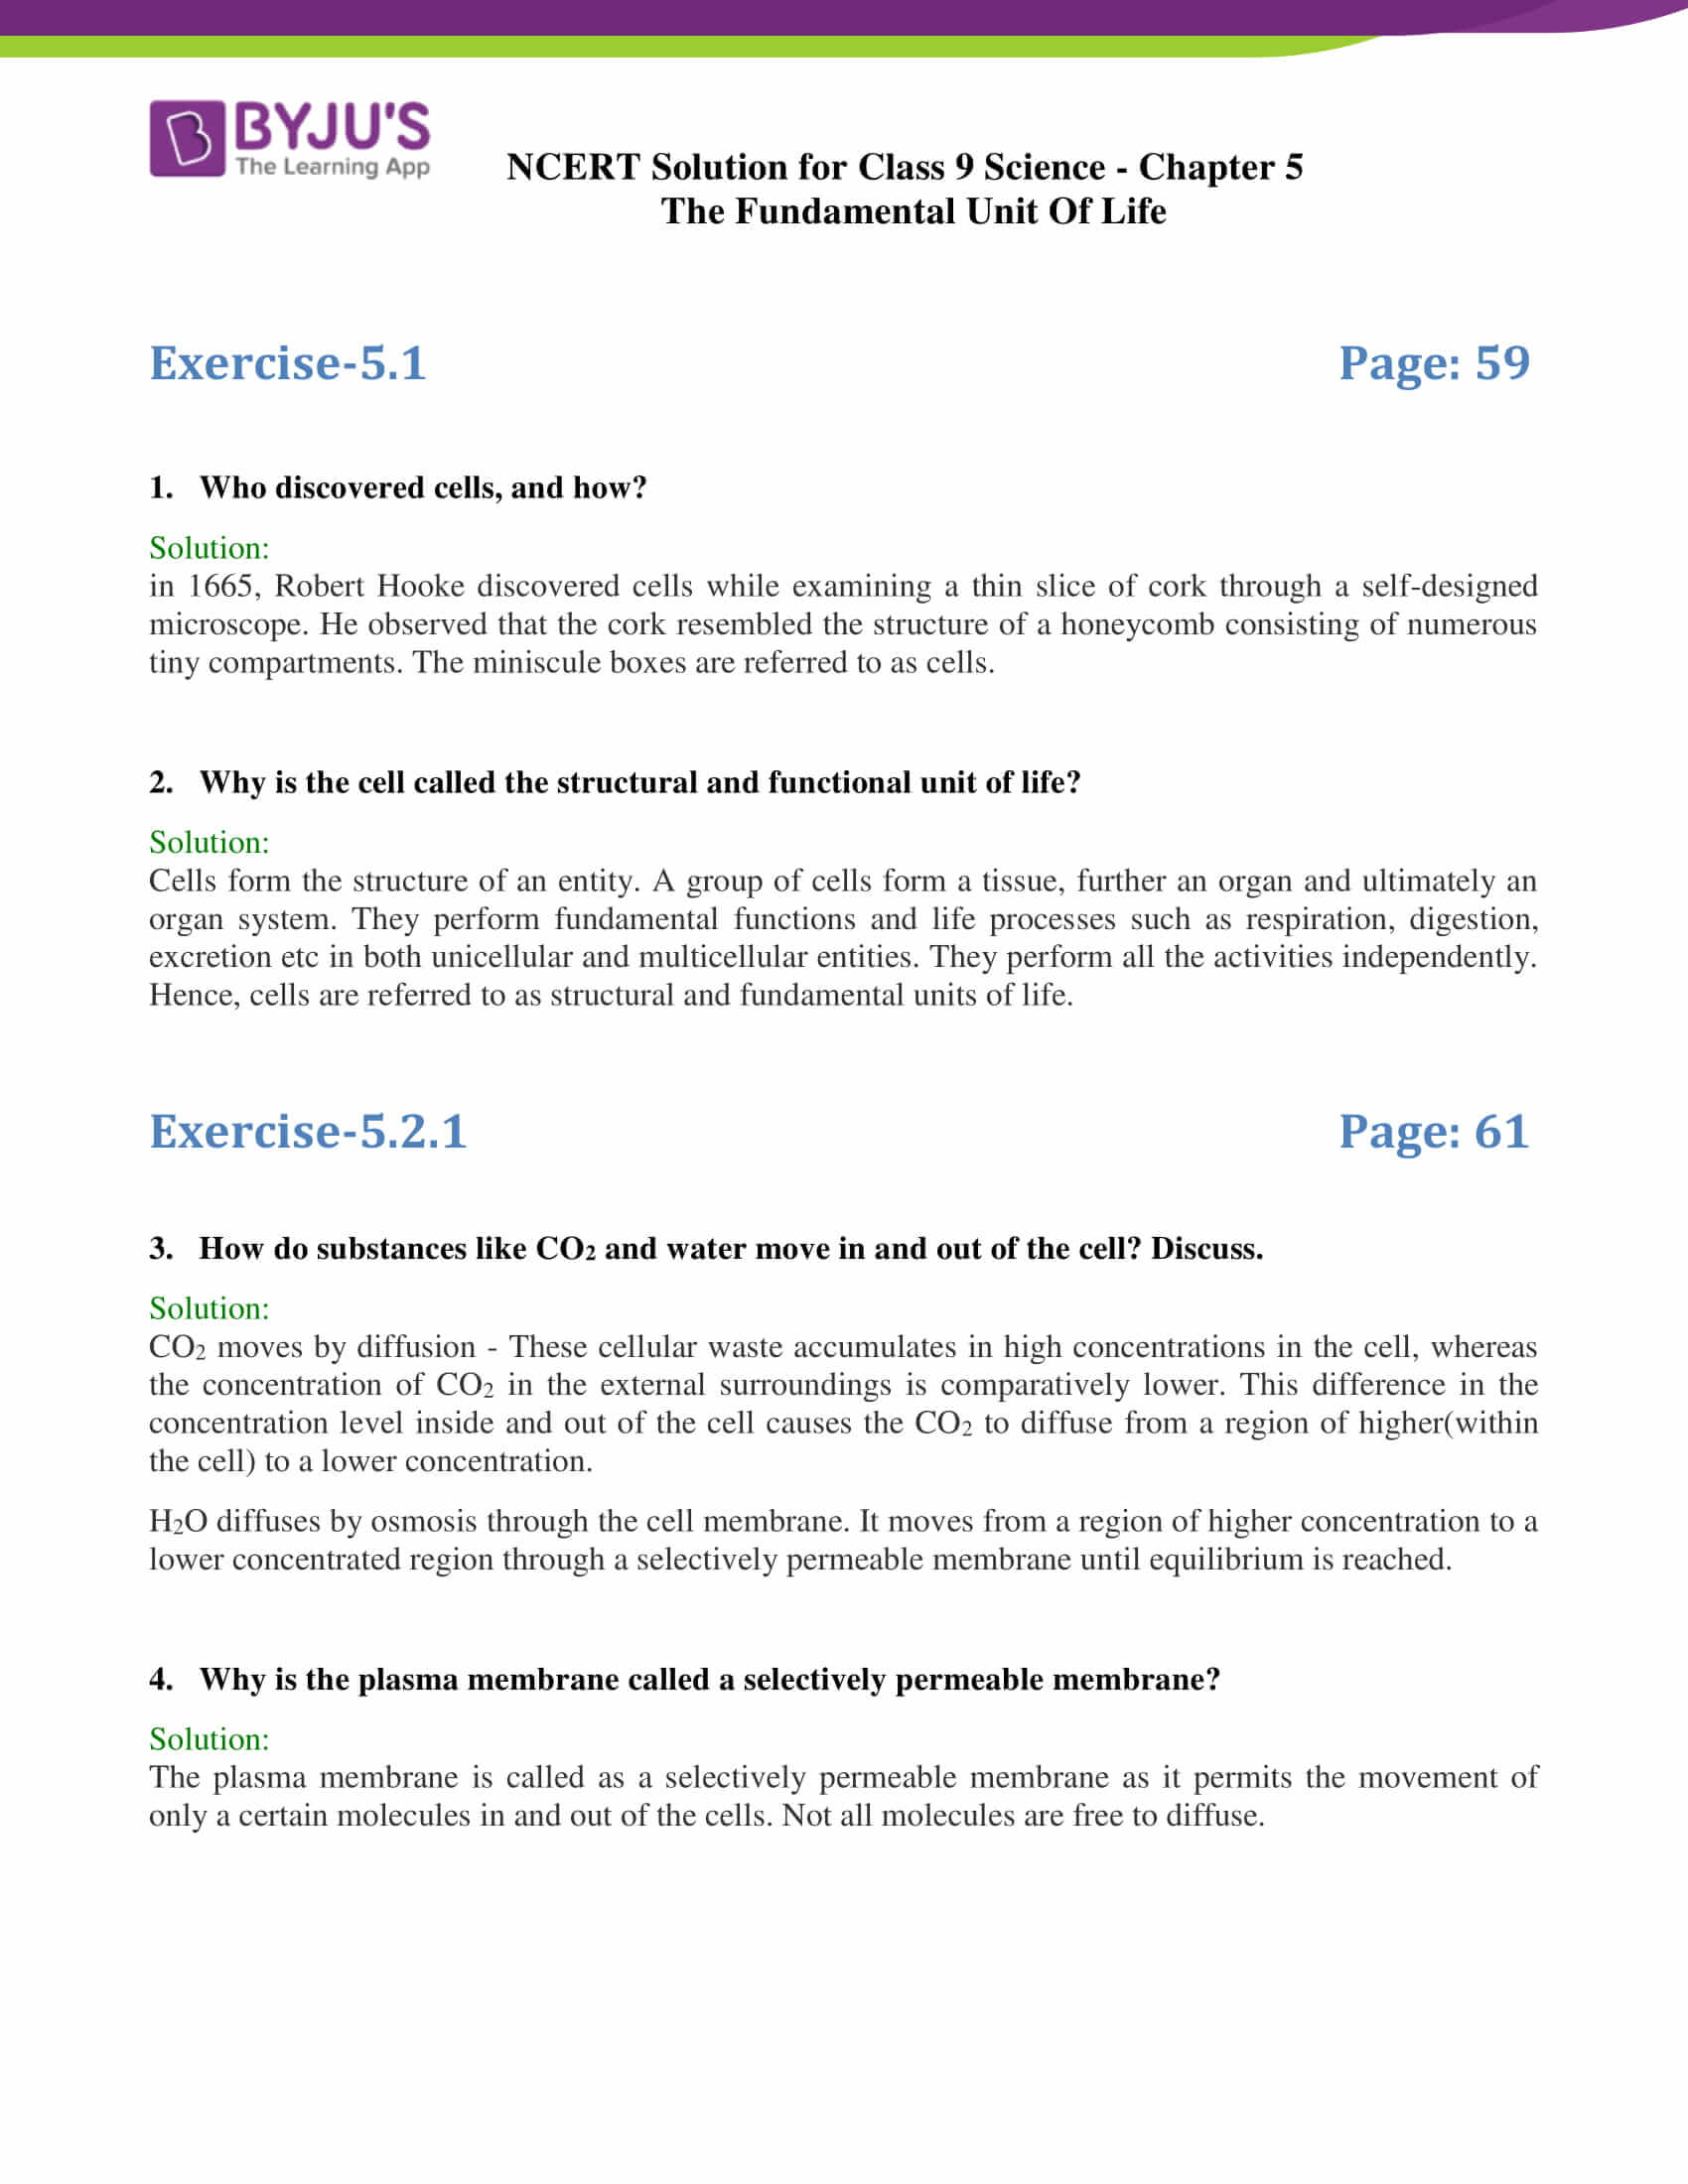 NCERT Solutions Class 9 Science Chapter 5 The Fundamental